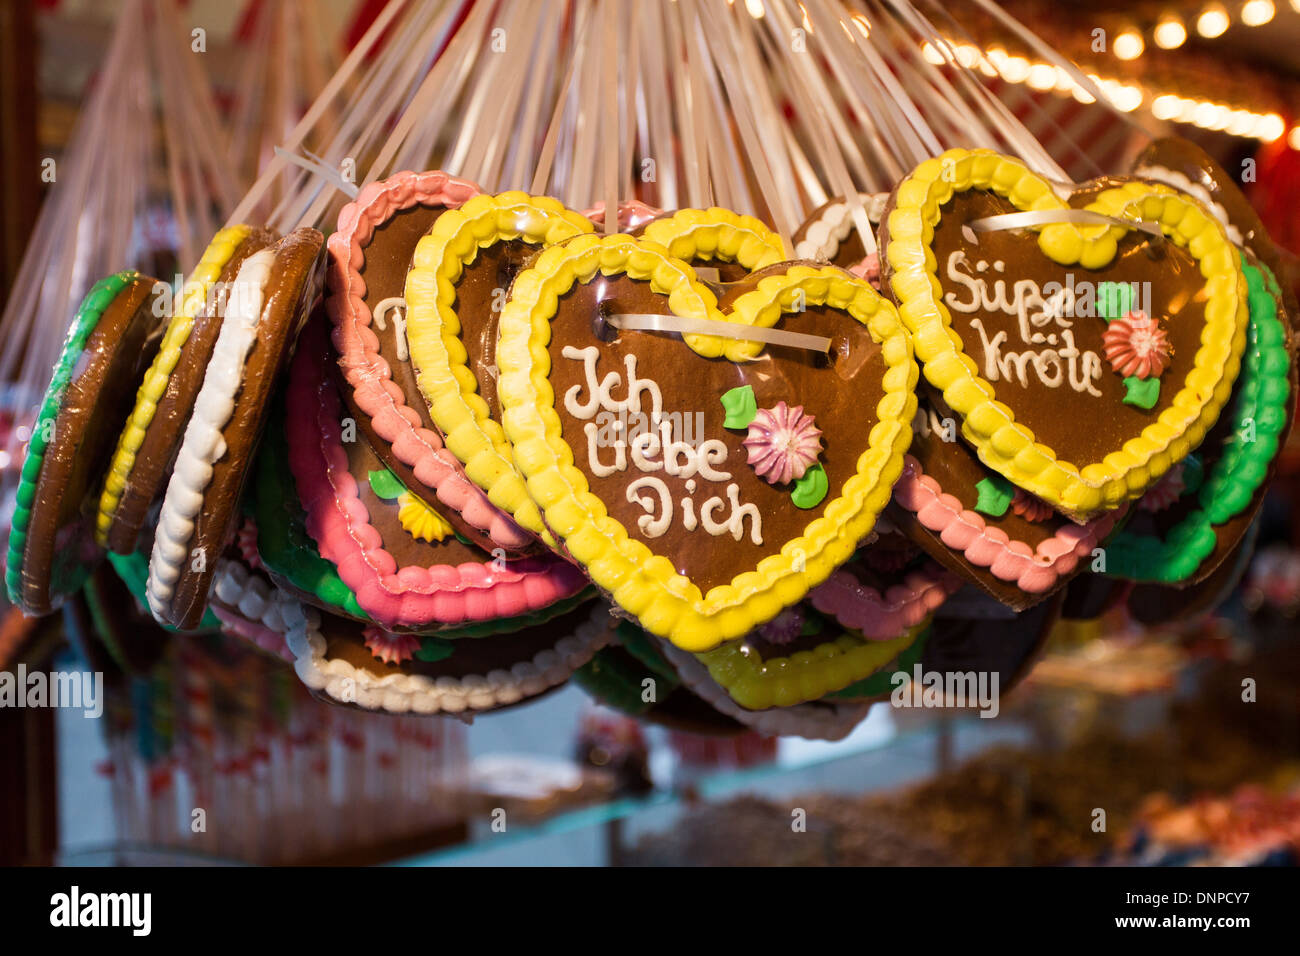 gingerbread heart germany love stockfotos gingerbread. Black Bedroom Furniture Sets. Home Design Ideas